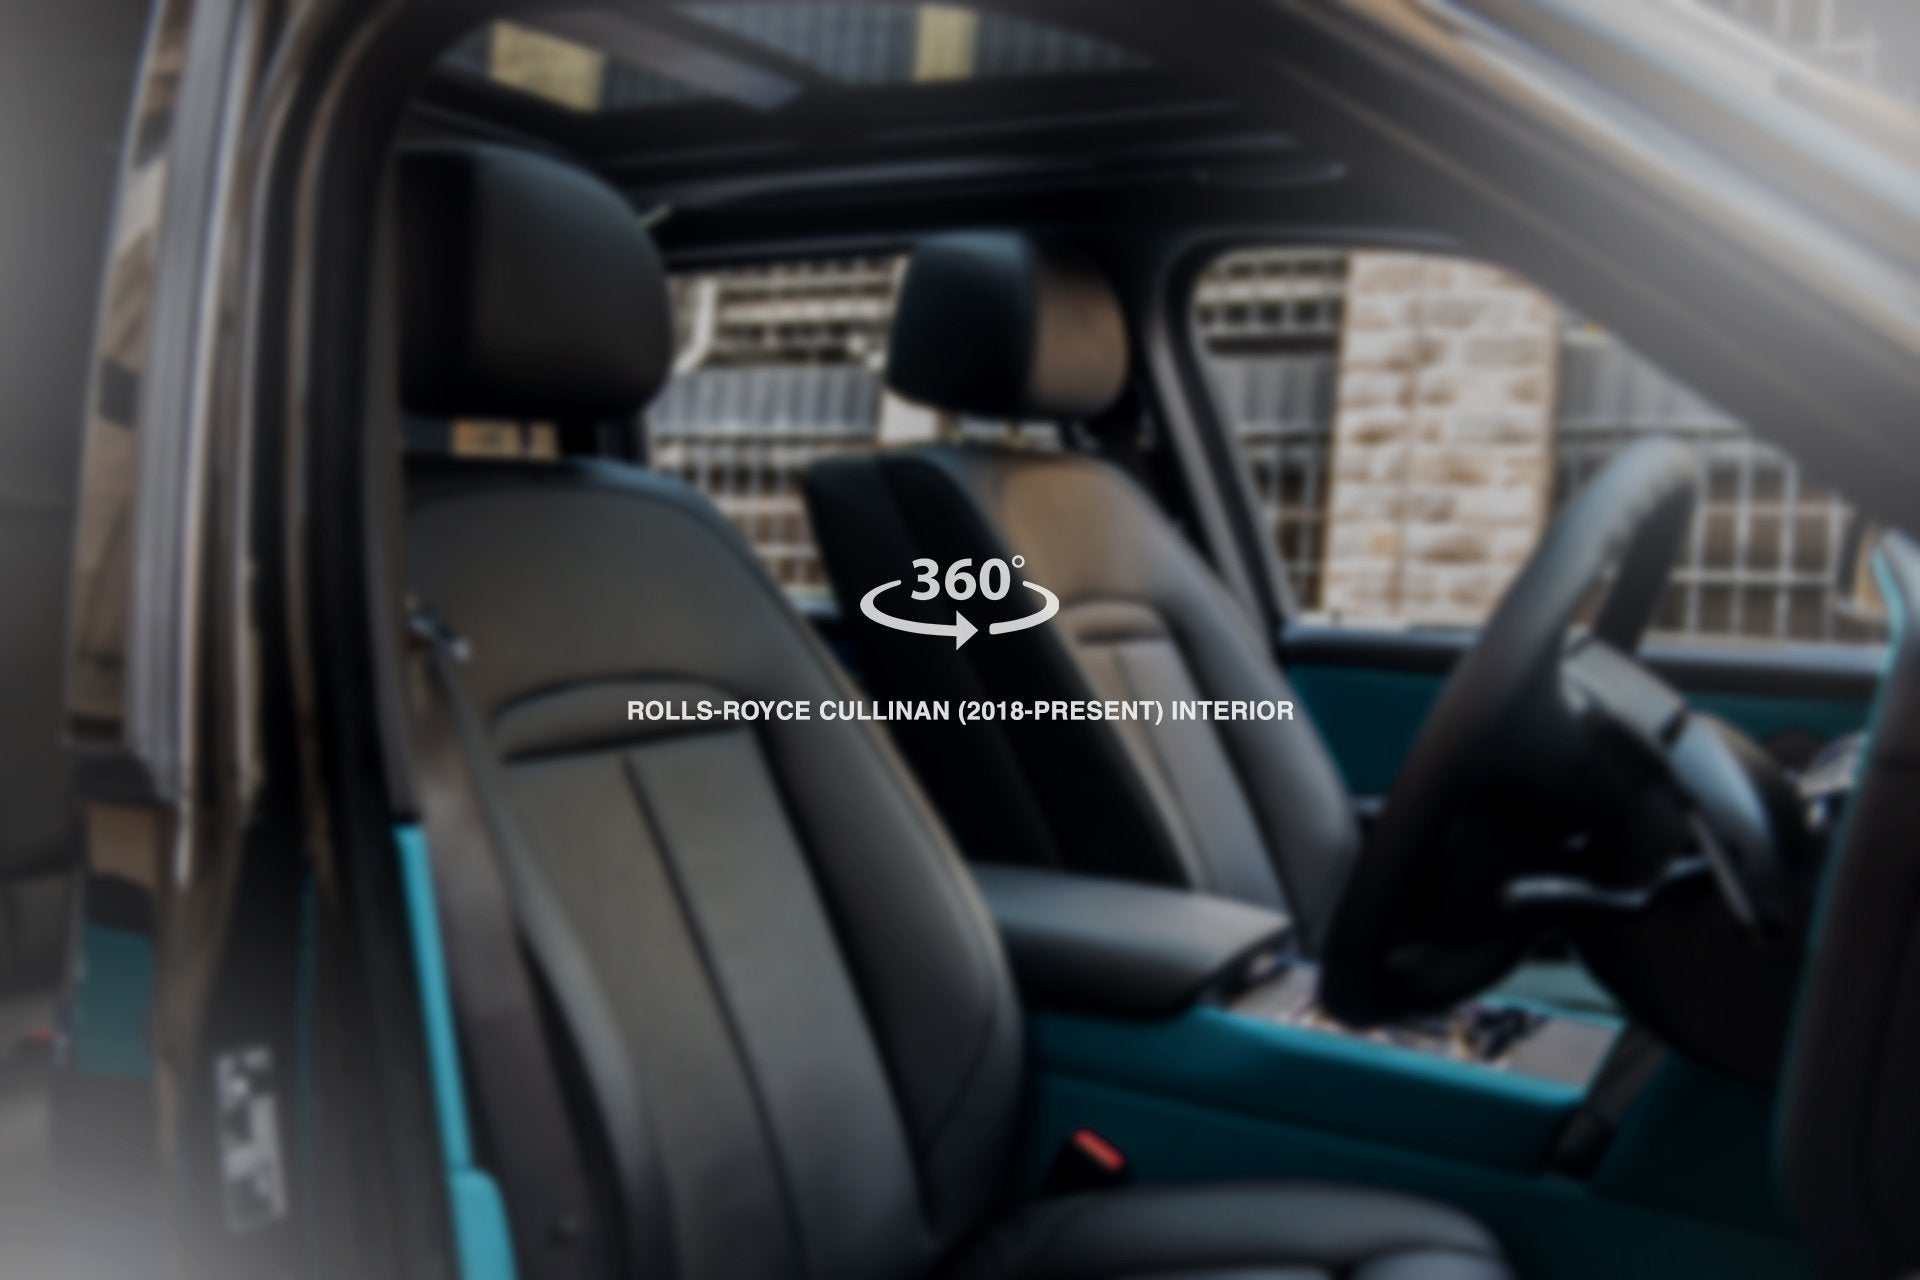 Rolls-Royce Cullinan (2018-Present) Bespoke Teal Interior by Kahn - Image 1856